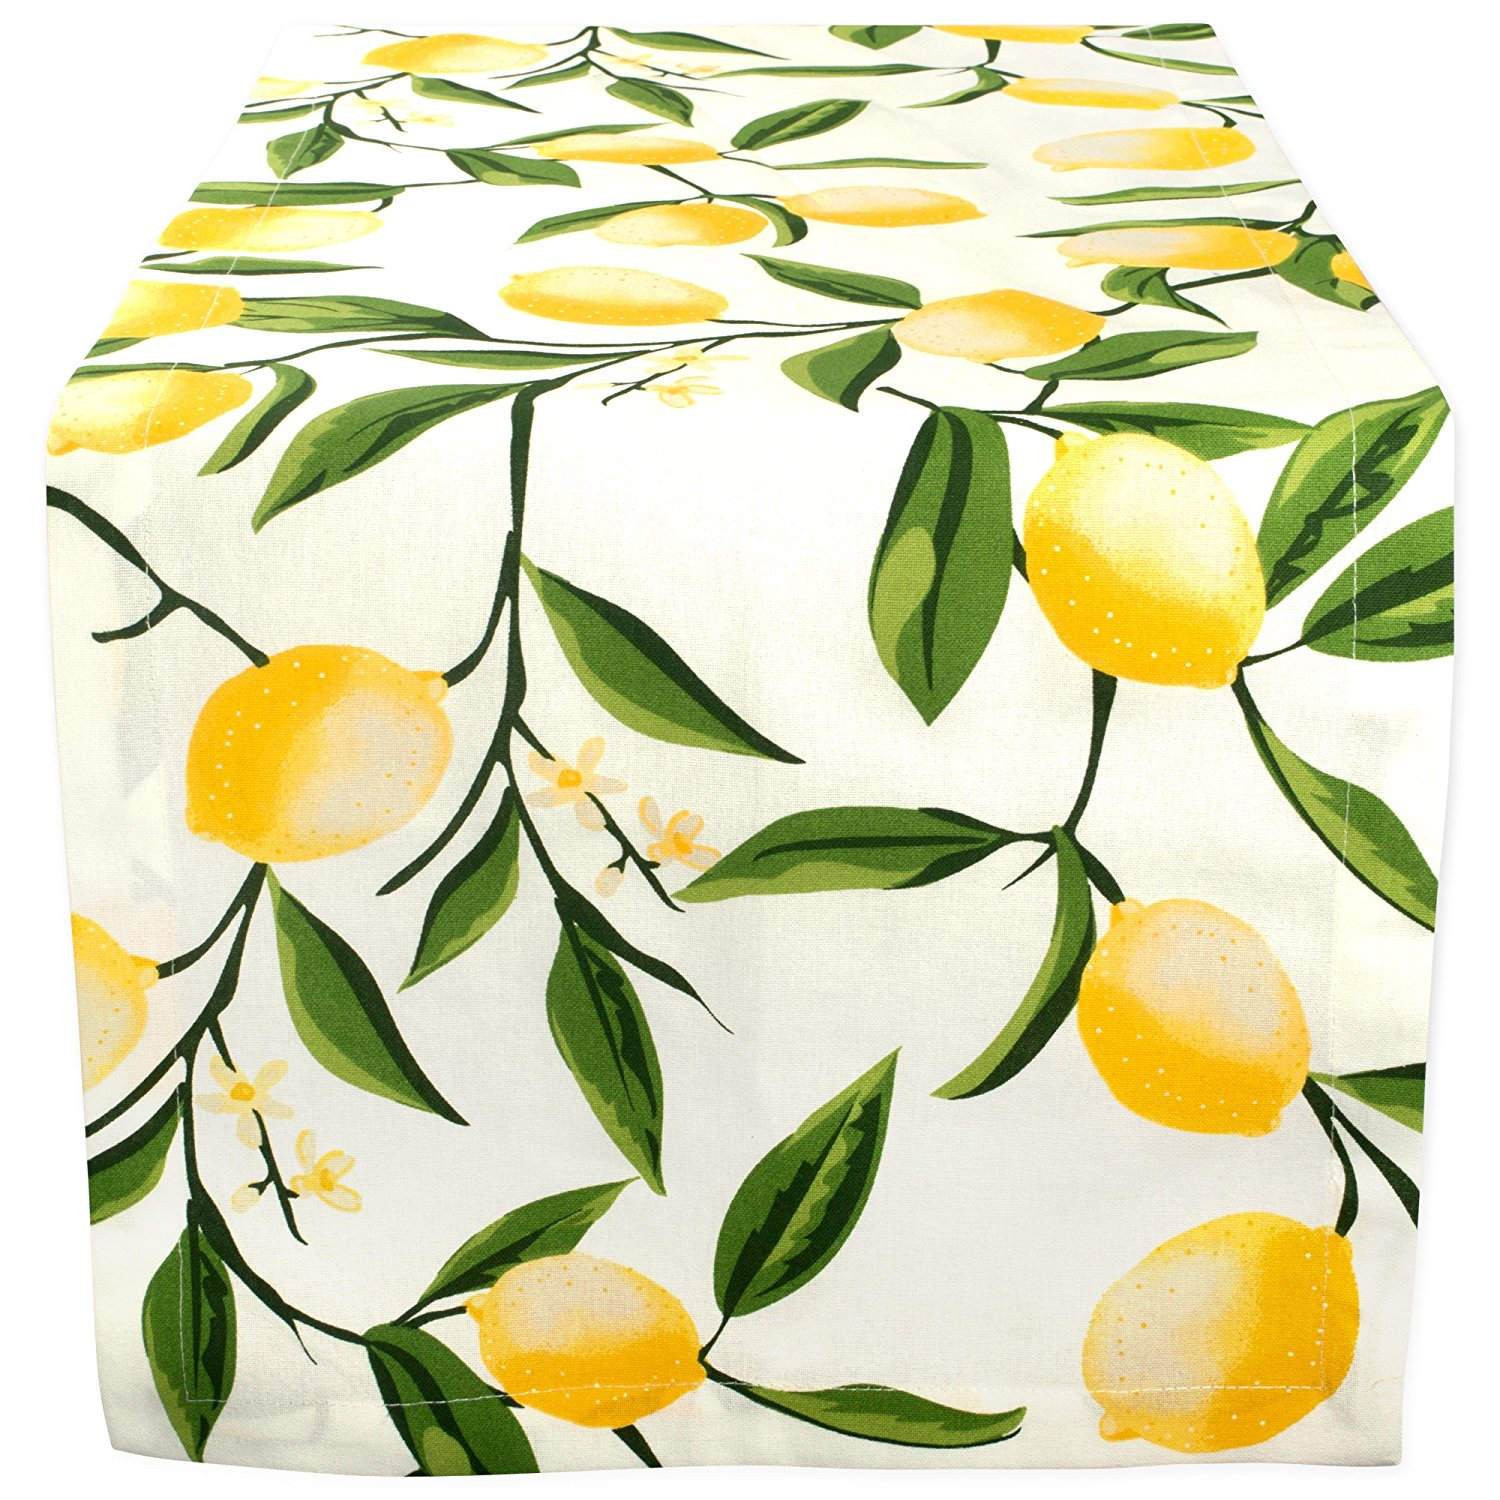 farmhouse lemon decor- lemon table runner